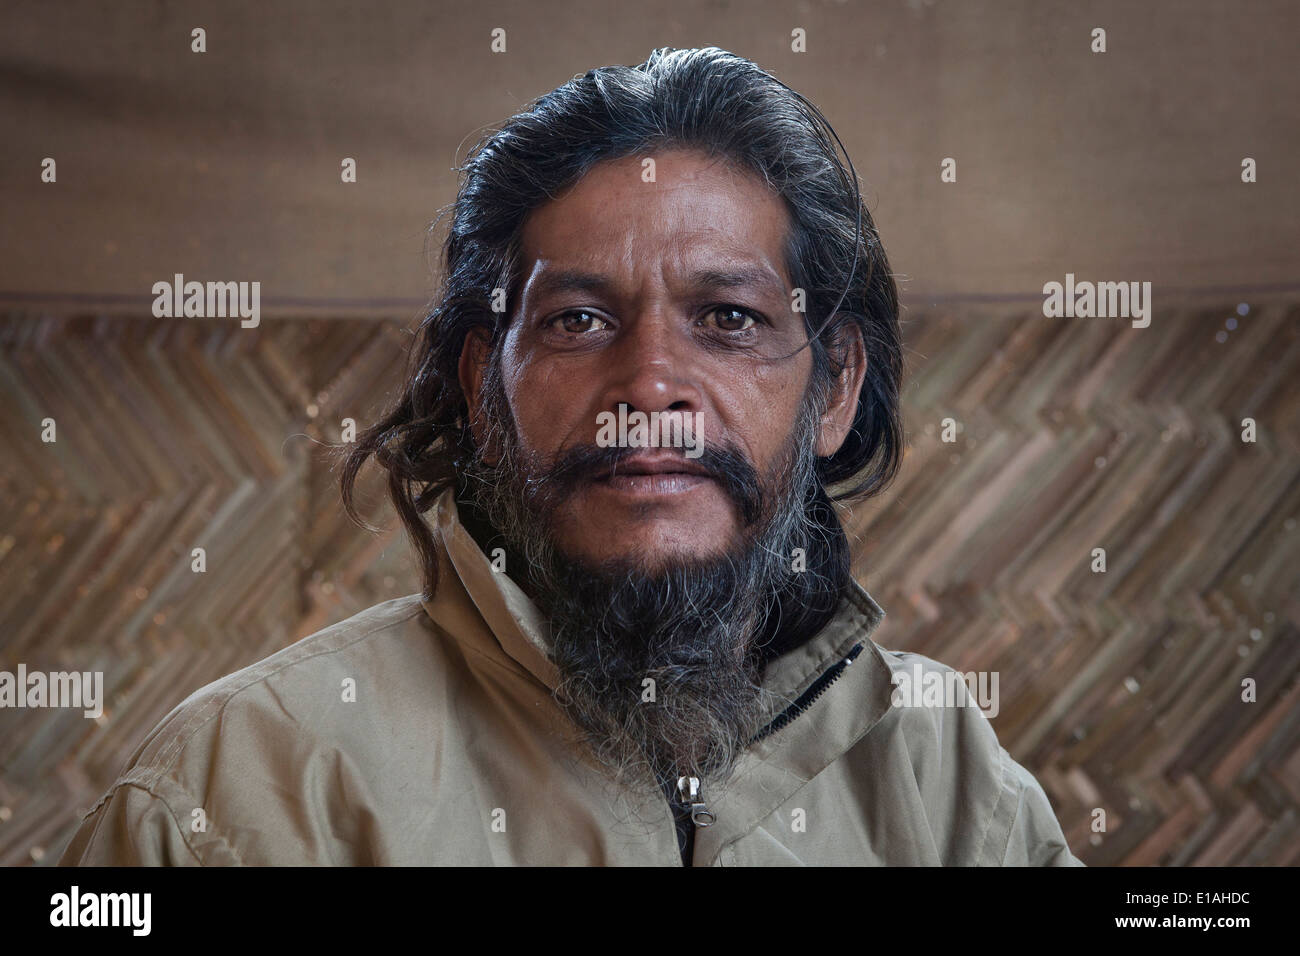 Portrait of a local man at the Kumbh Mela 2013 in Allahabad, India - Stock Image